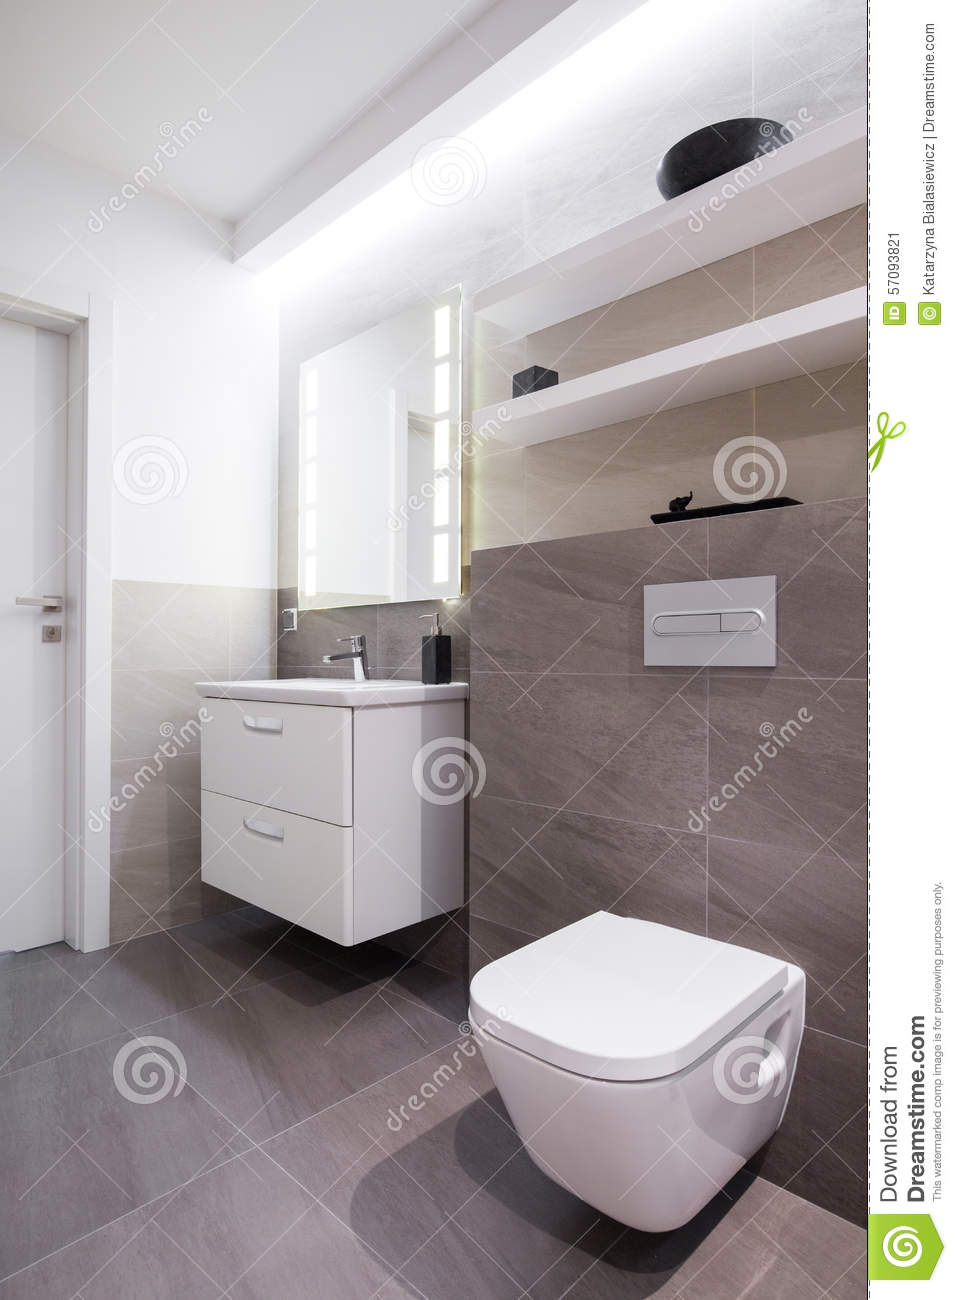 Grey tiles in bathroom stock image image of contemporary for Moderne wandfliesen